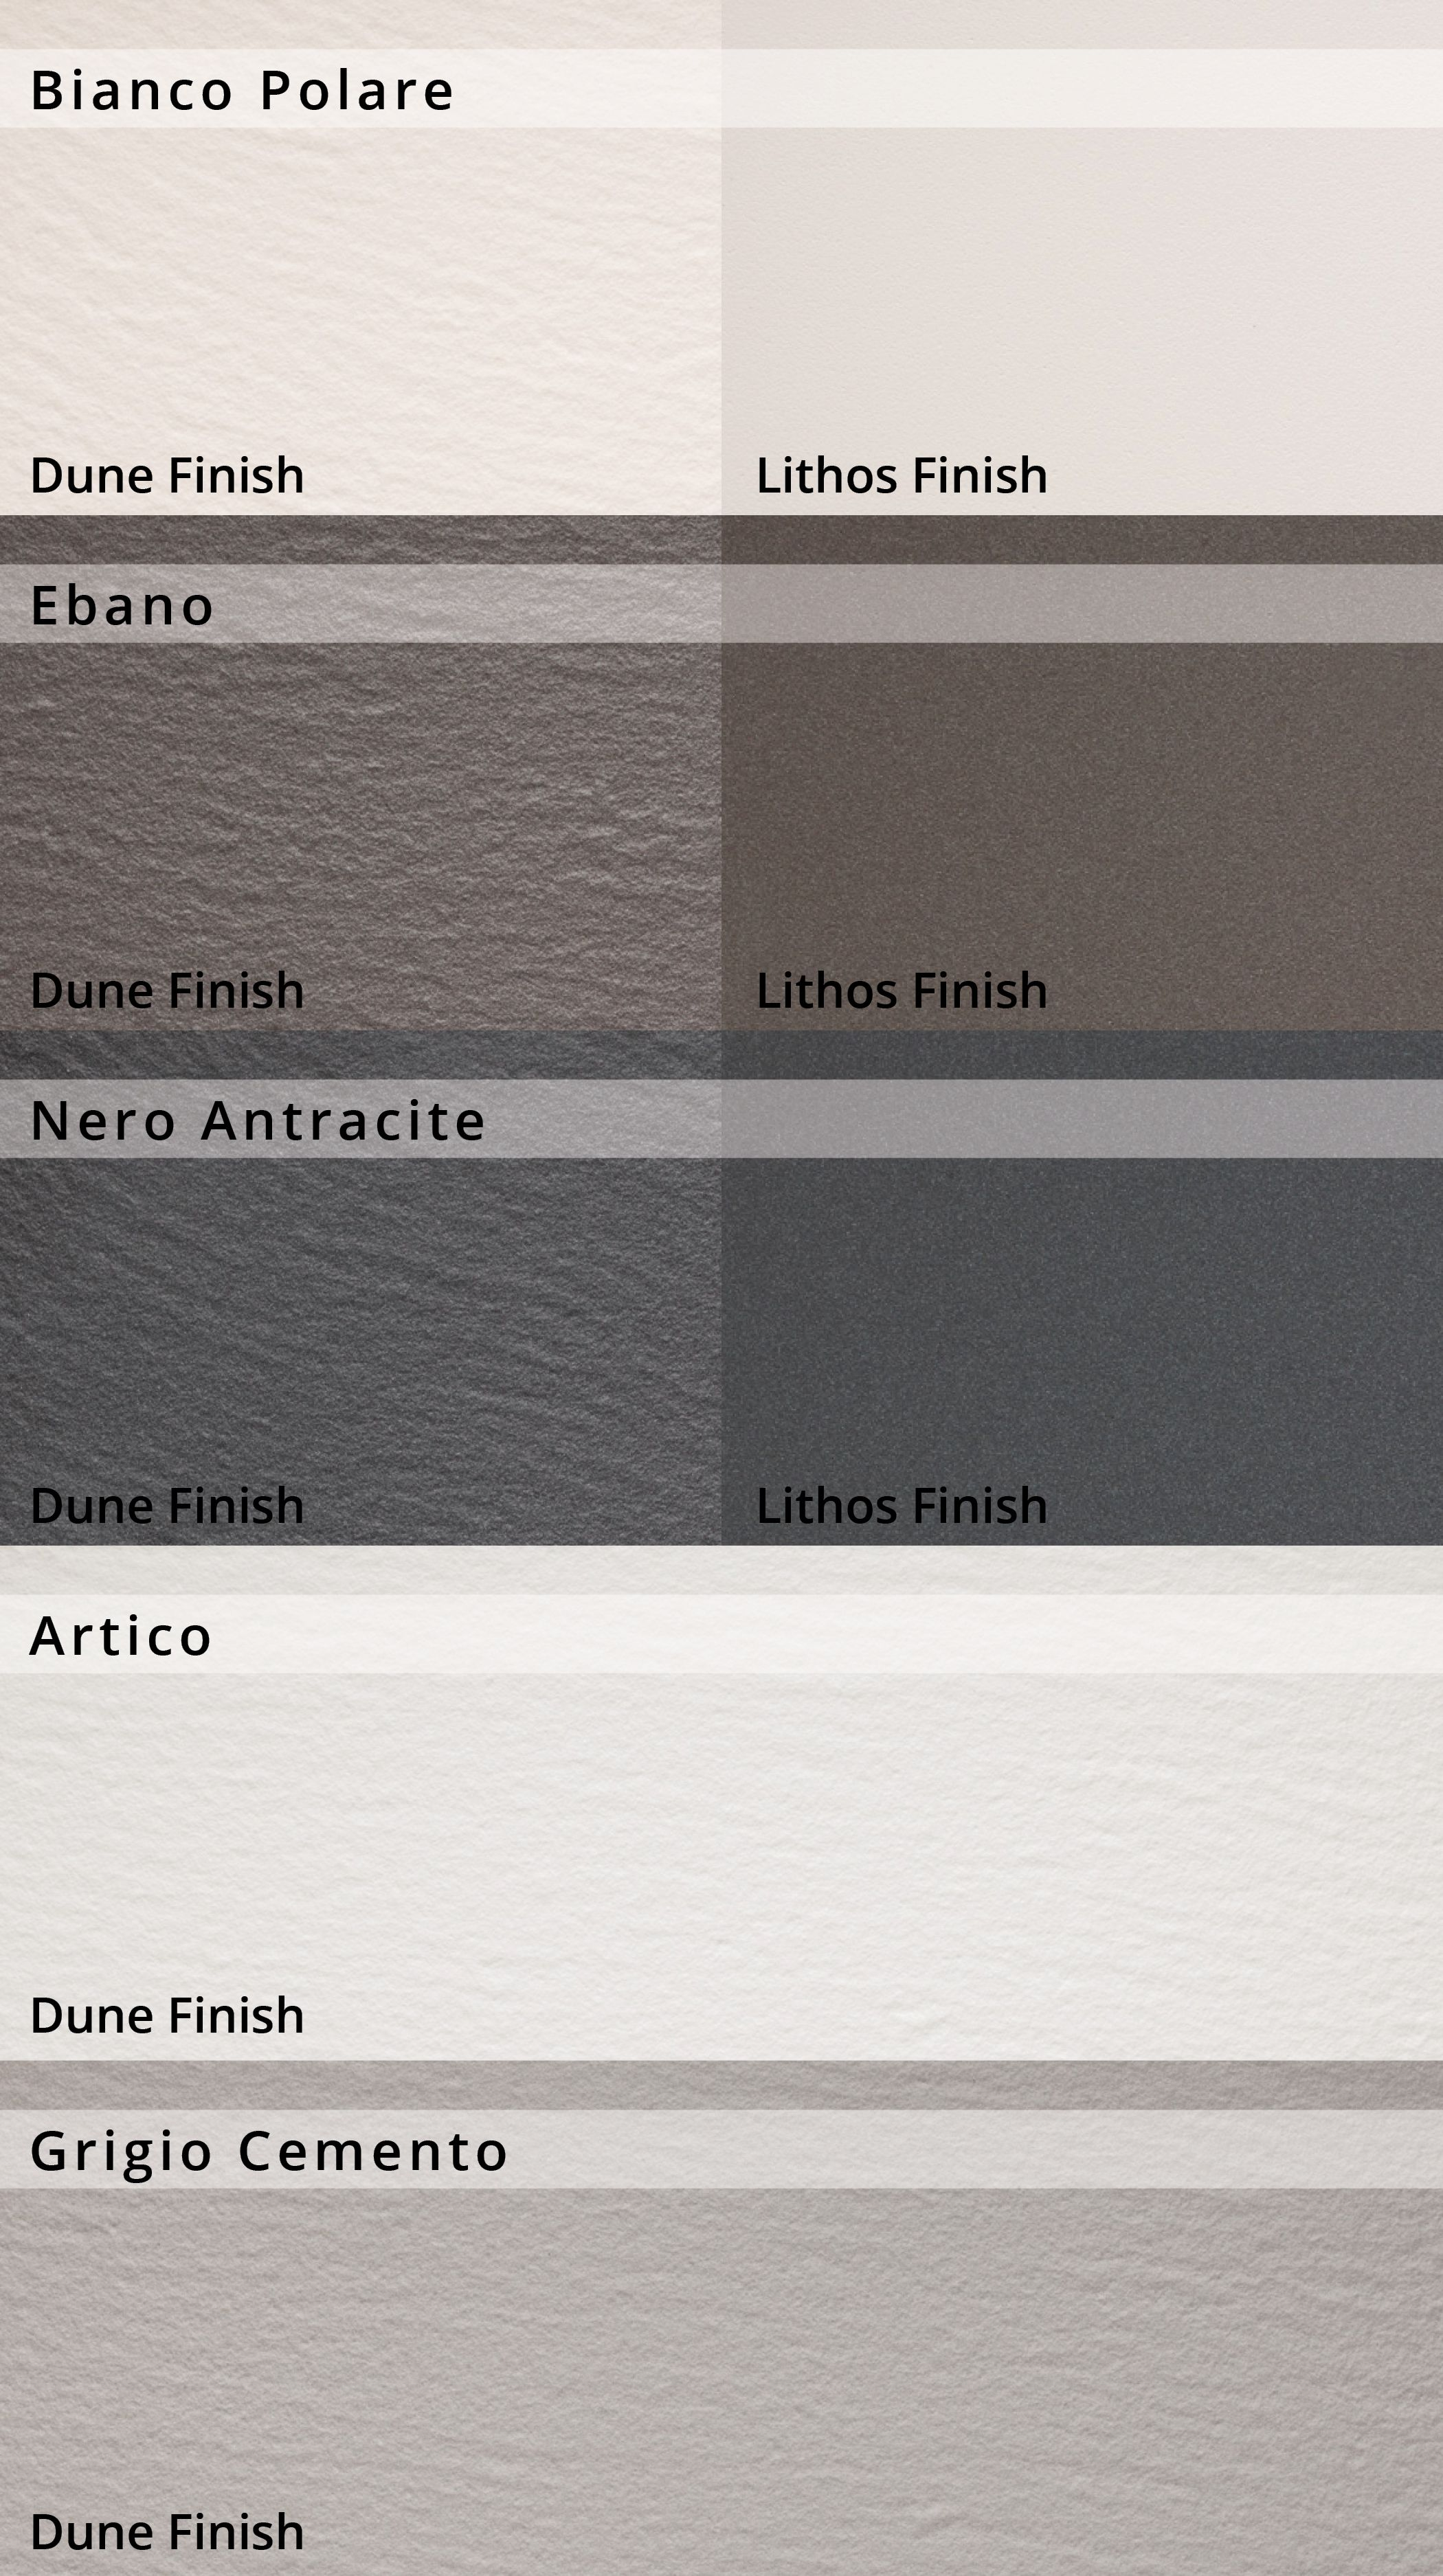 Lithos Marmor Our Lapitec Offering Now Includes Two New Finishes Dune Lithos